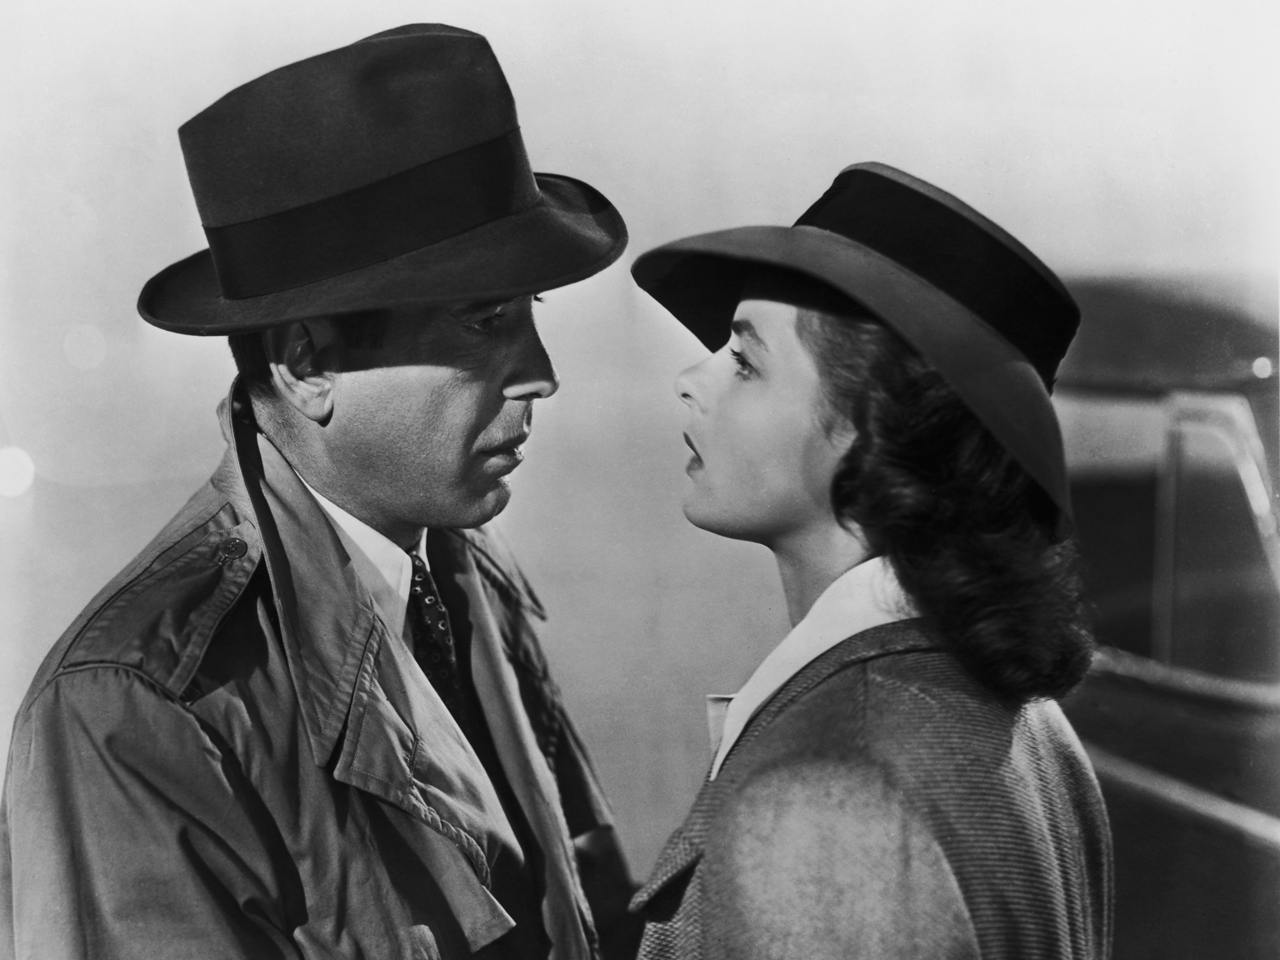 Humphrey Bogart and Ingrid Bergman talking in Casablanca.